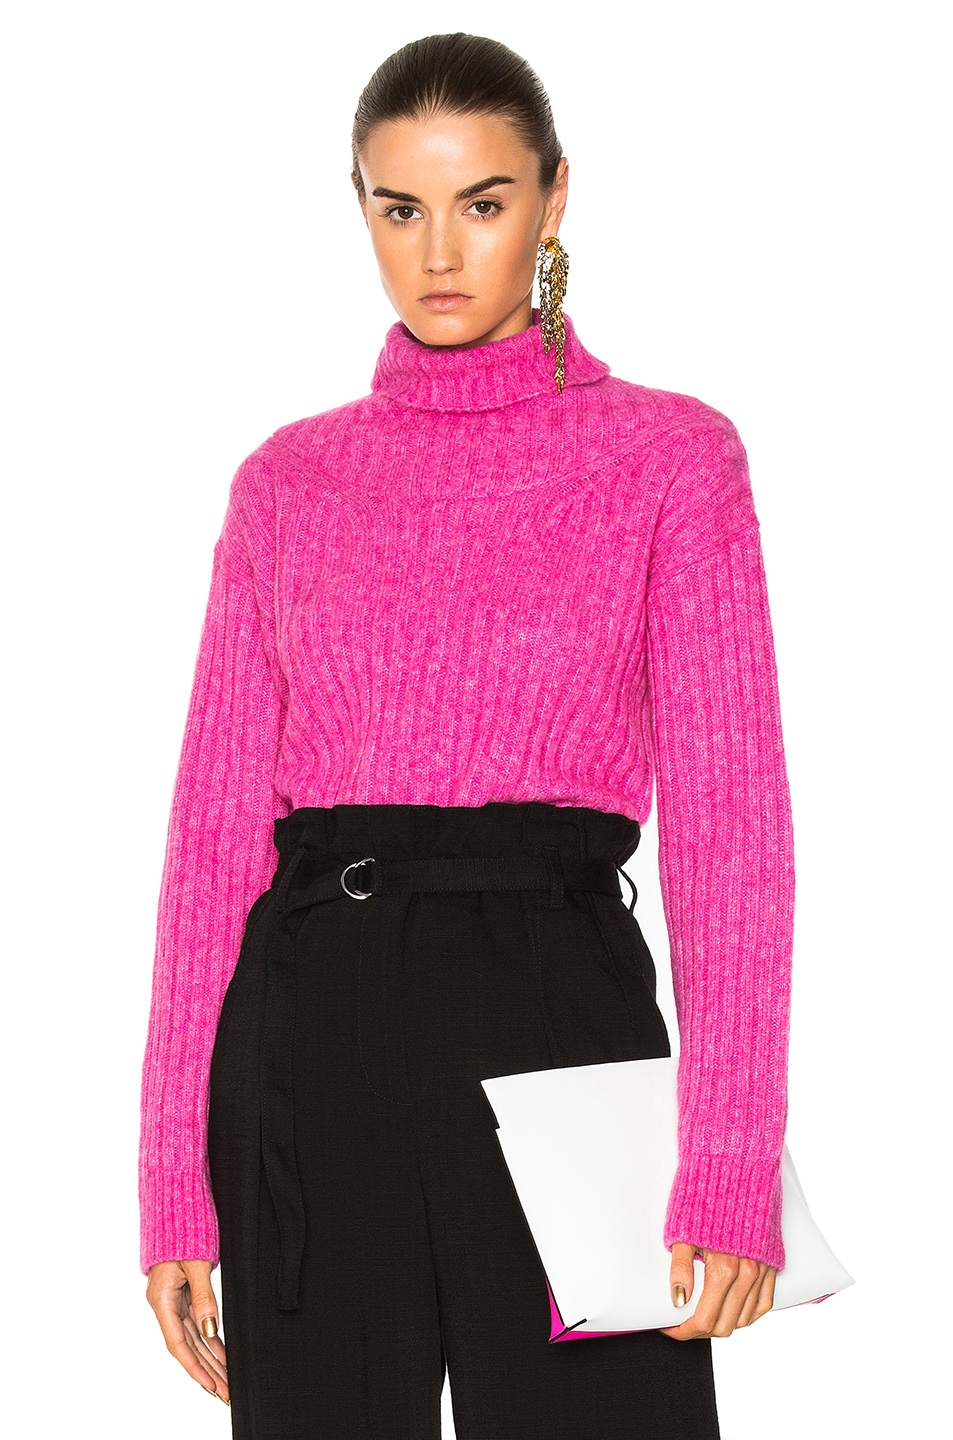 681922d0a2d1 3.1 phillip lim Rib Turtleneck Sweater in Candy Pink